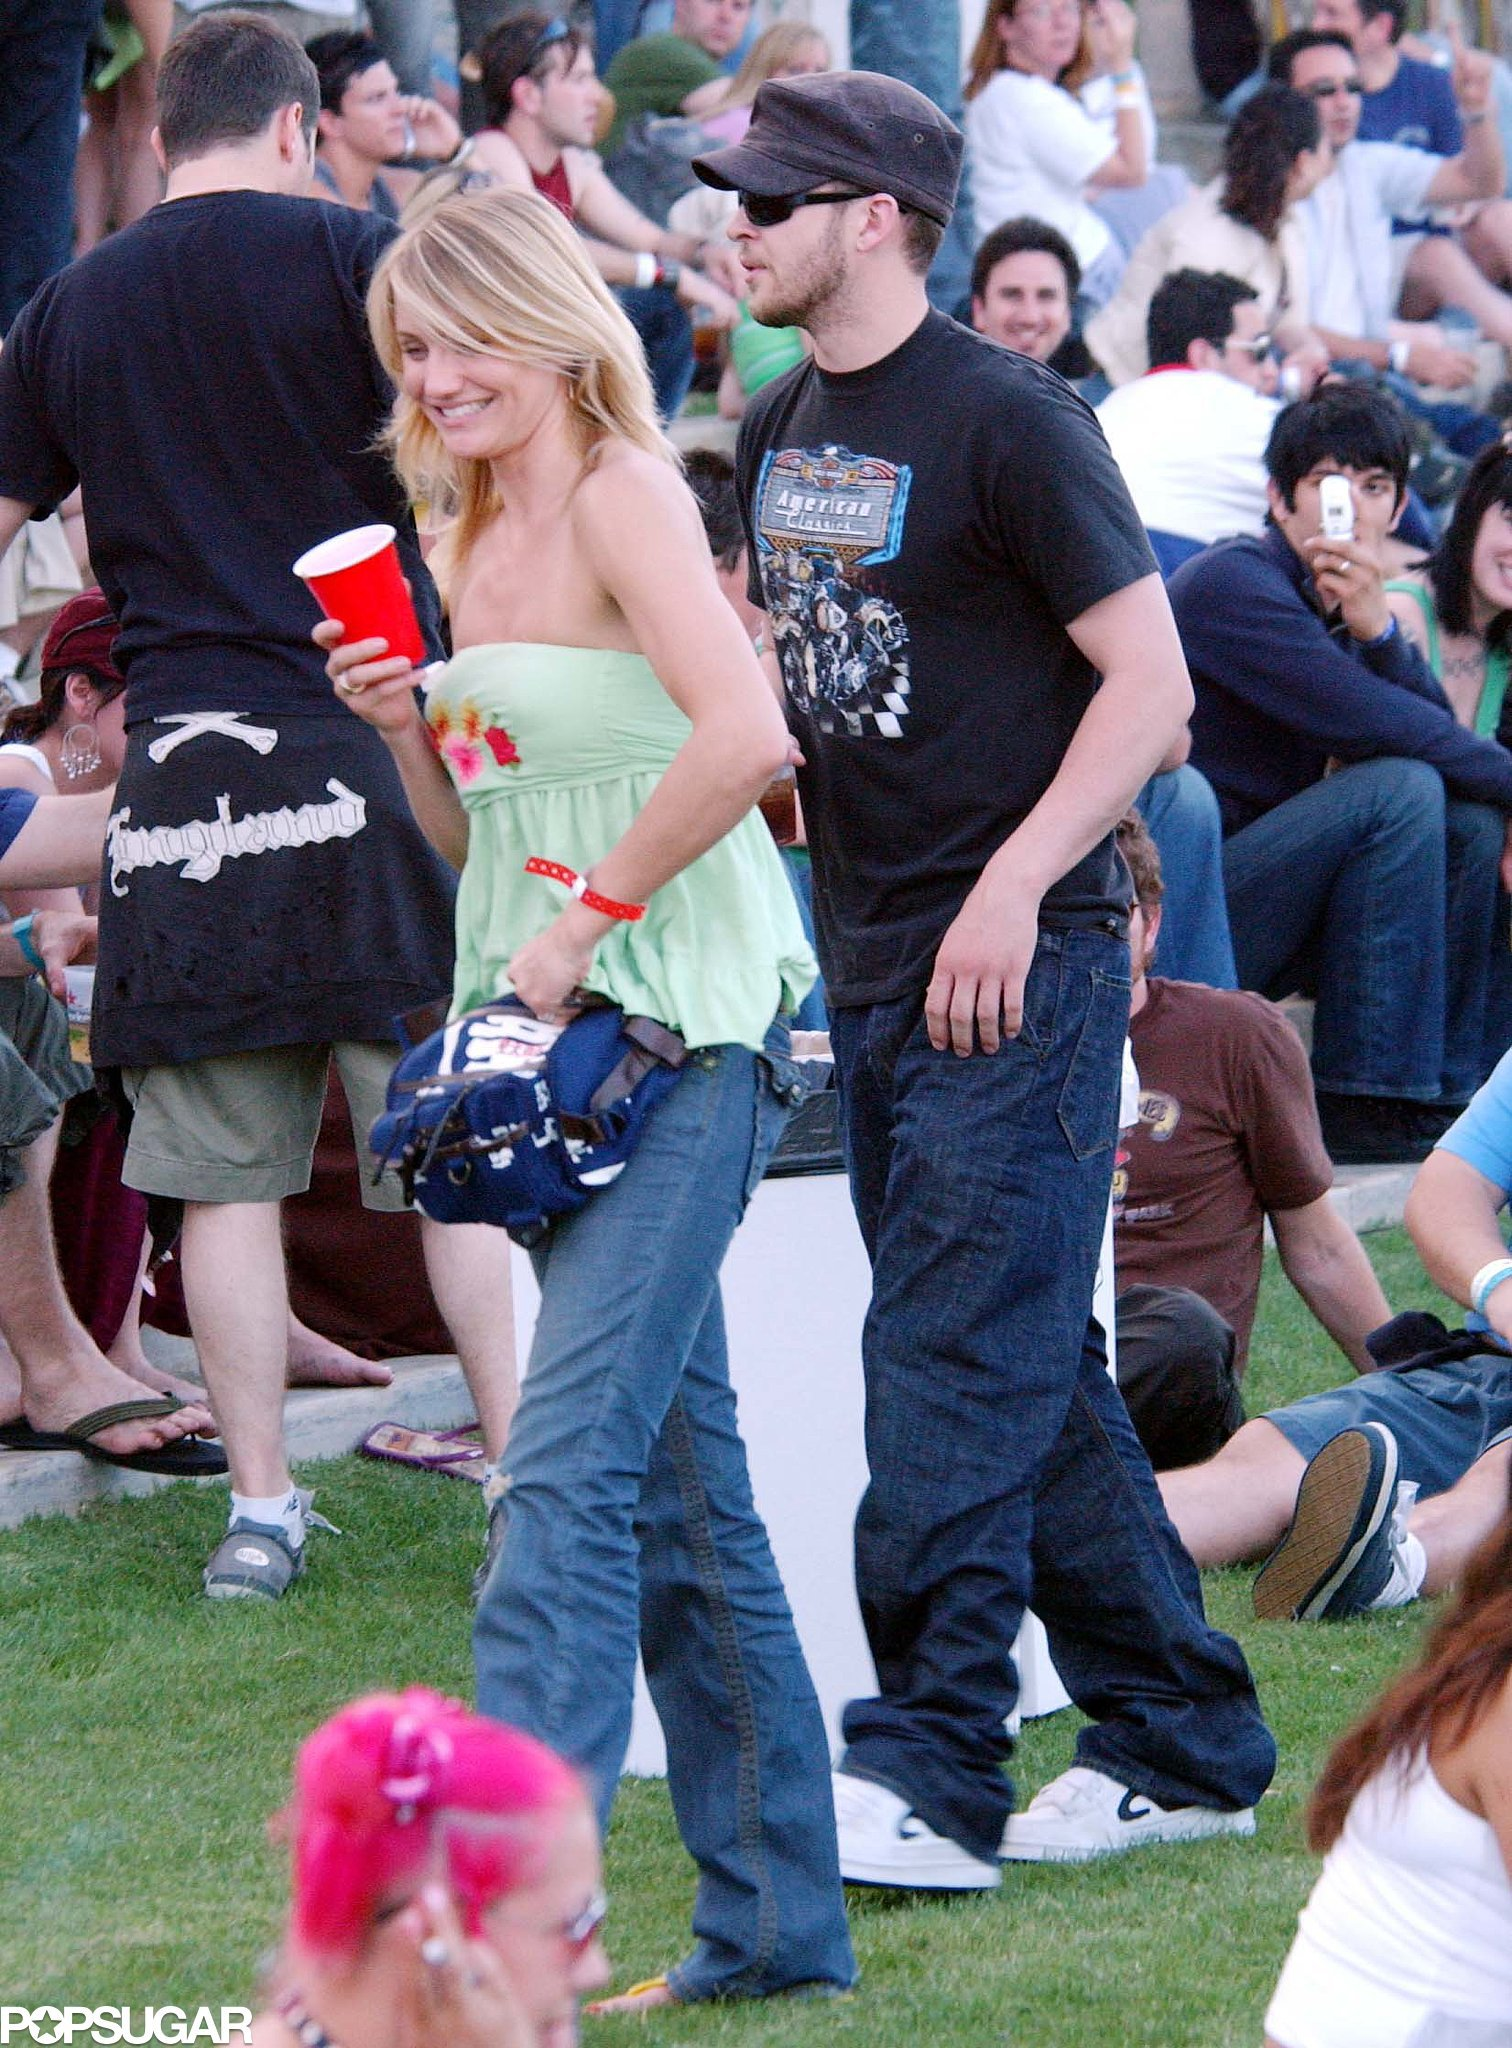 Cameron Diaz and Justin Timberlake checked out the 2005 Coachella crow